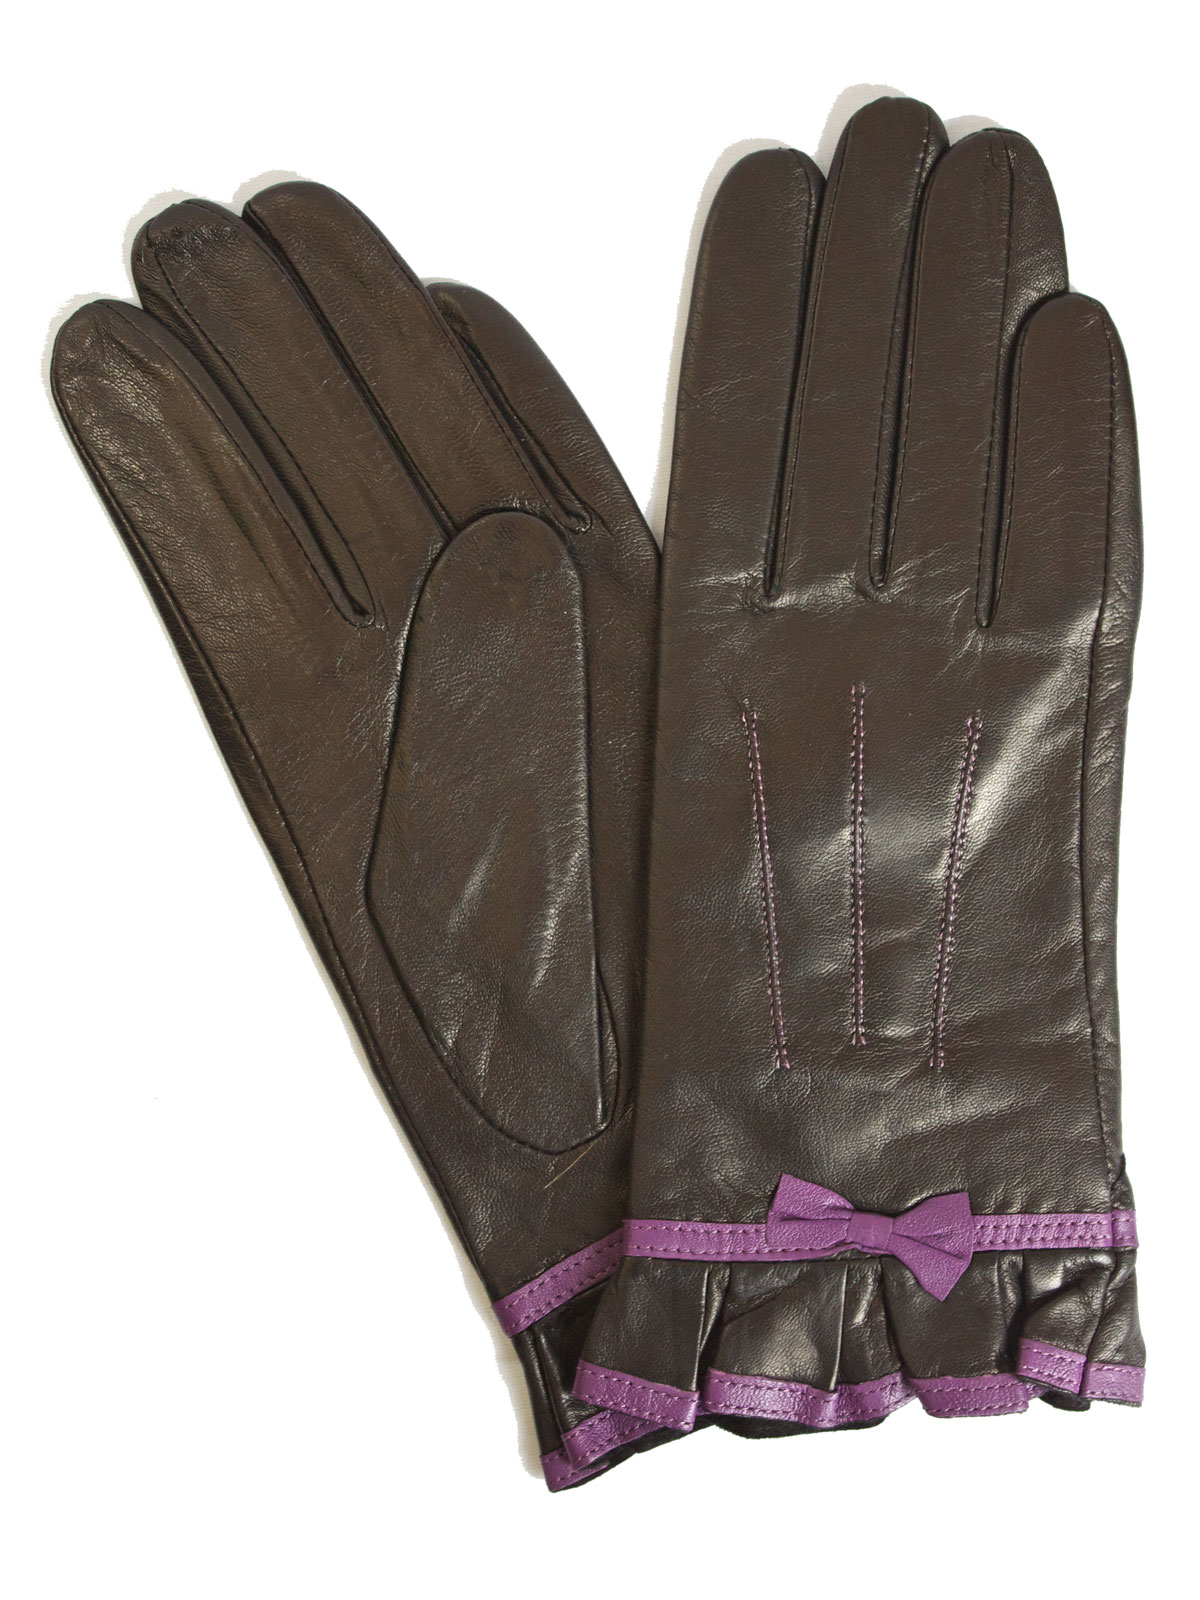 Pia Rossini Ladies Black Leather Gloves with violet bow frill